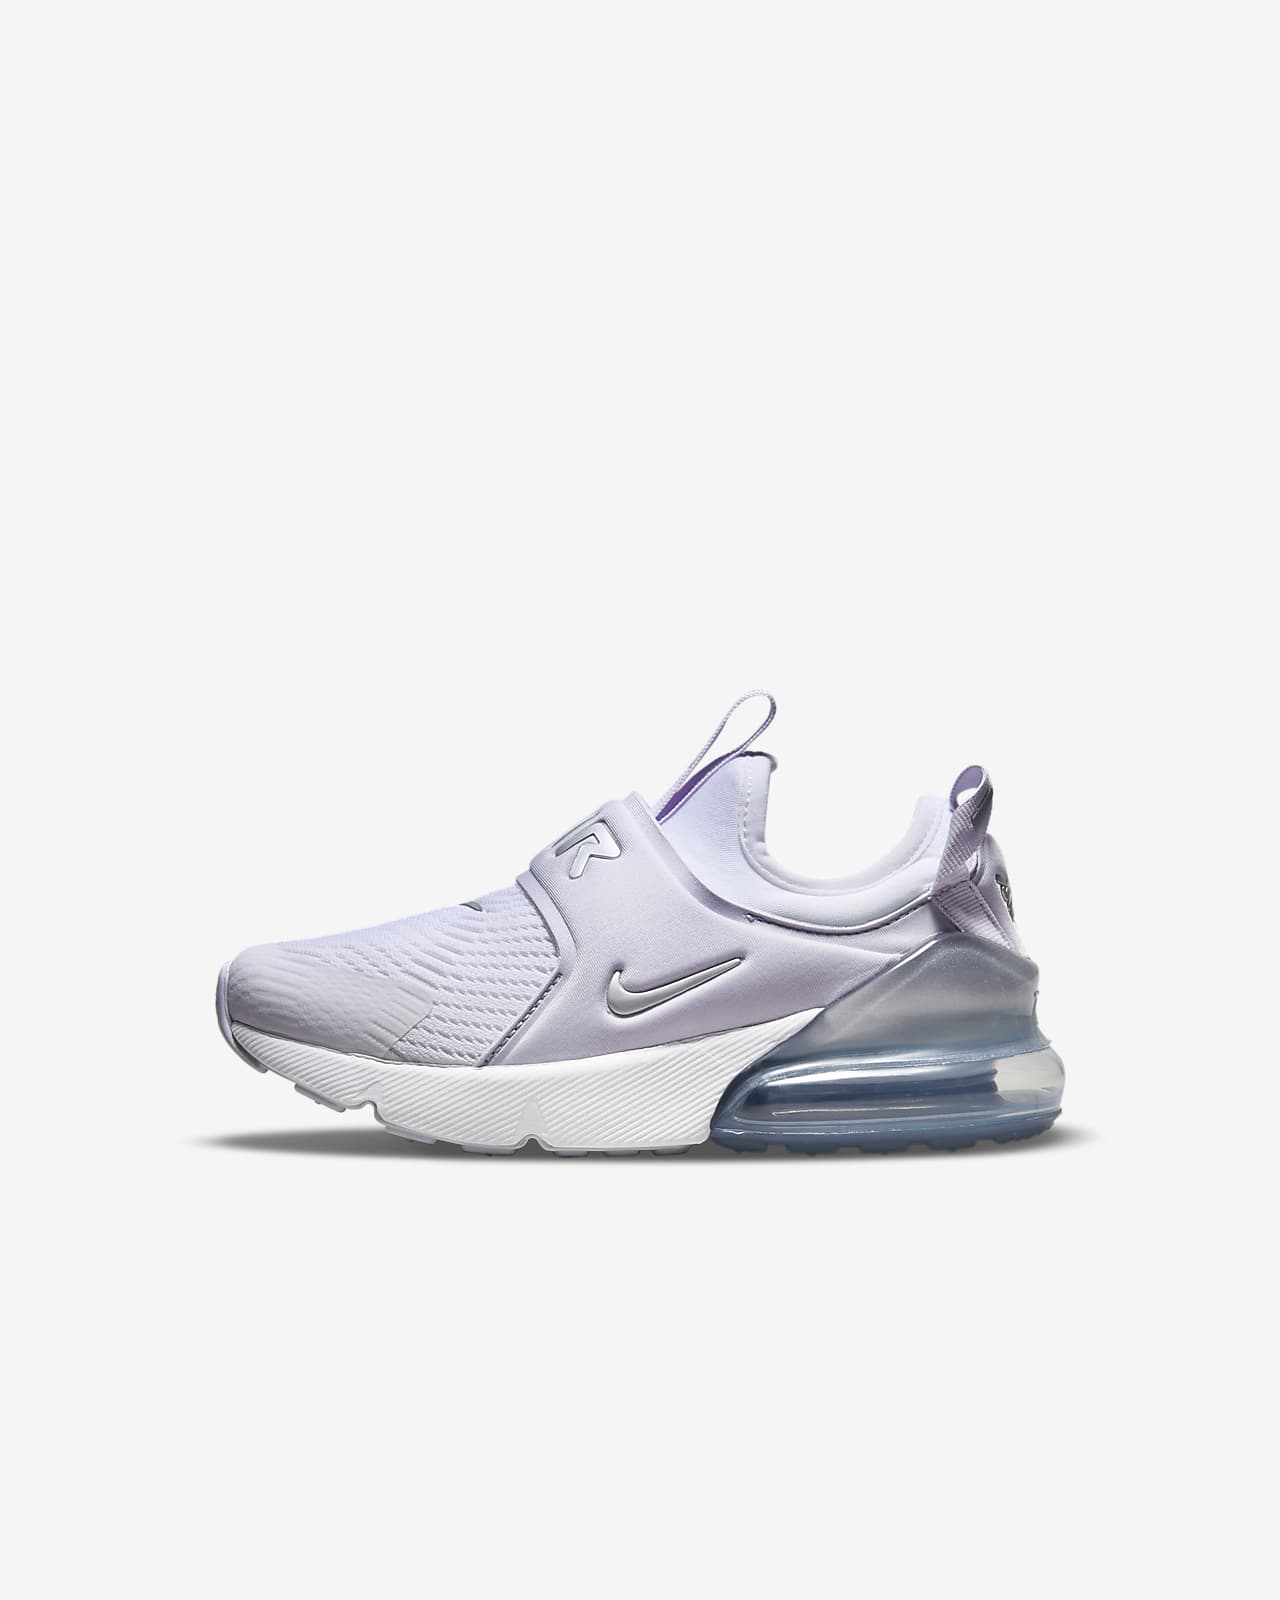 Nike Air Max 270 Extreme Little Kids' Shoes